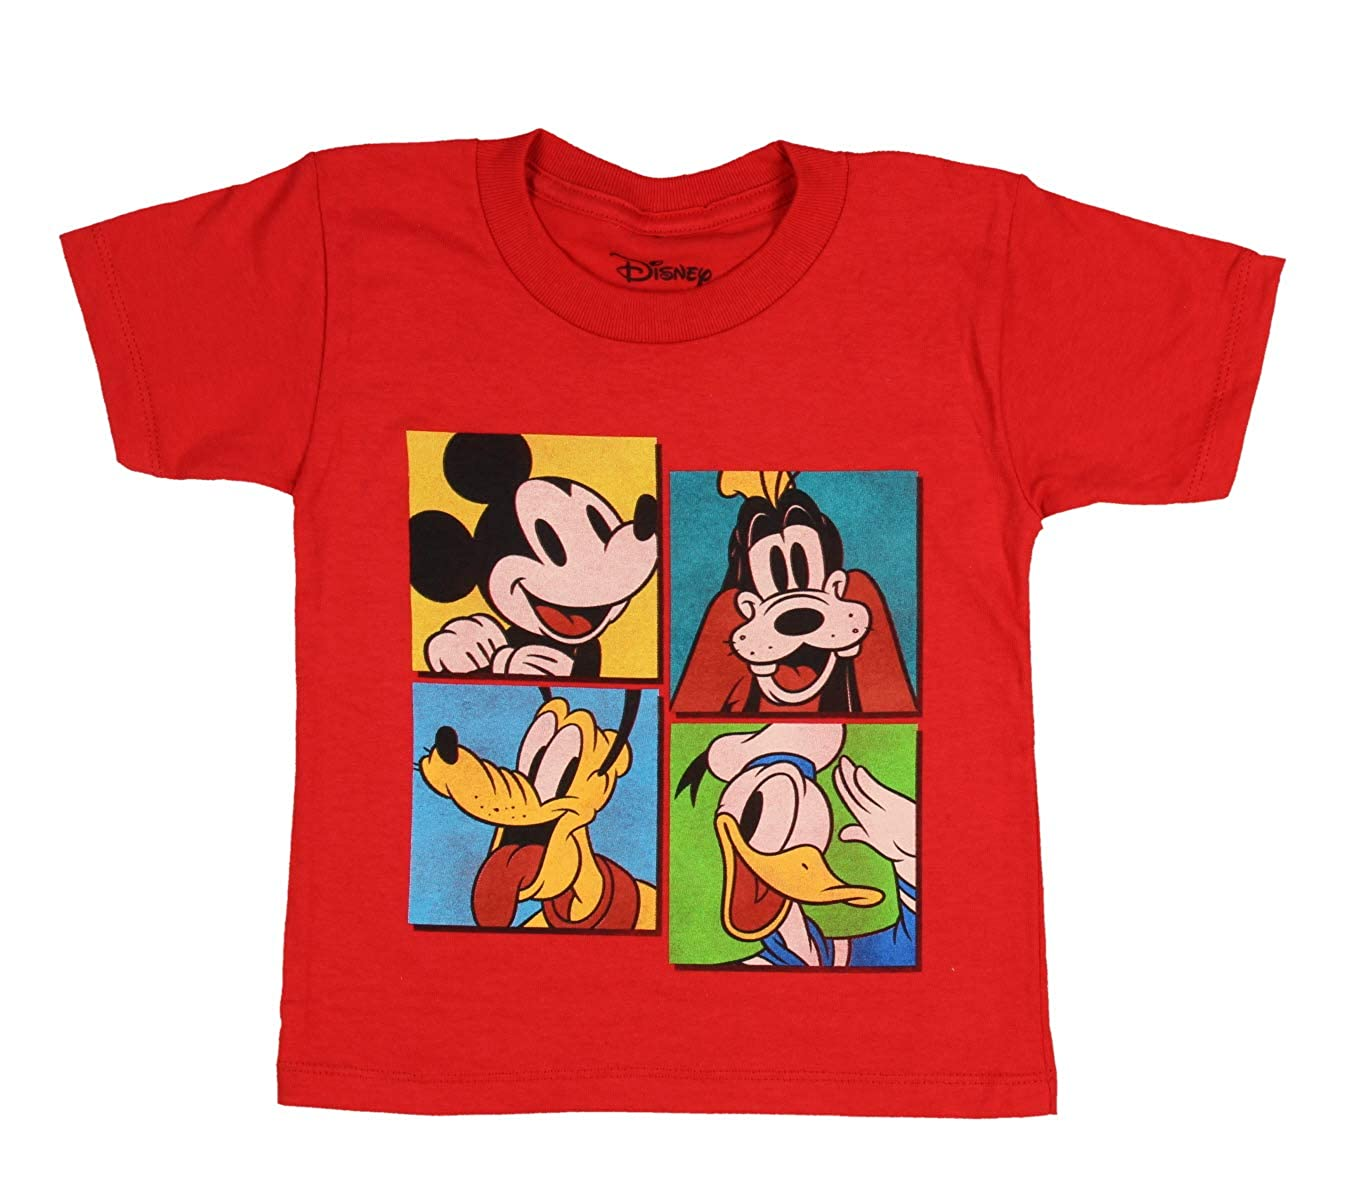 Disney Mickey Mouse Shirt Toddler Character Panel Pluto Goofy Donald Duck Tee